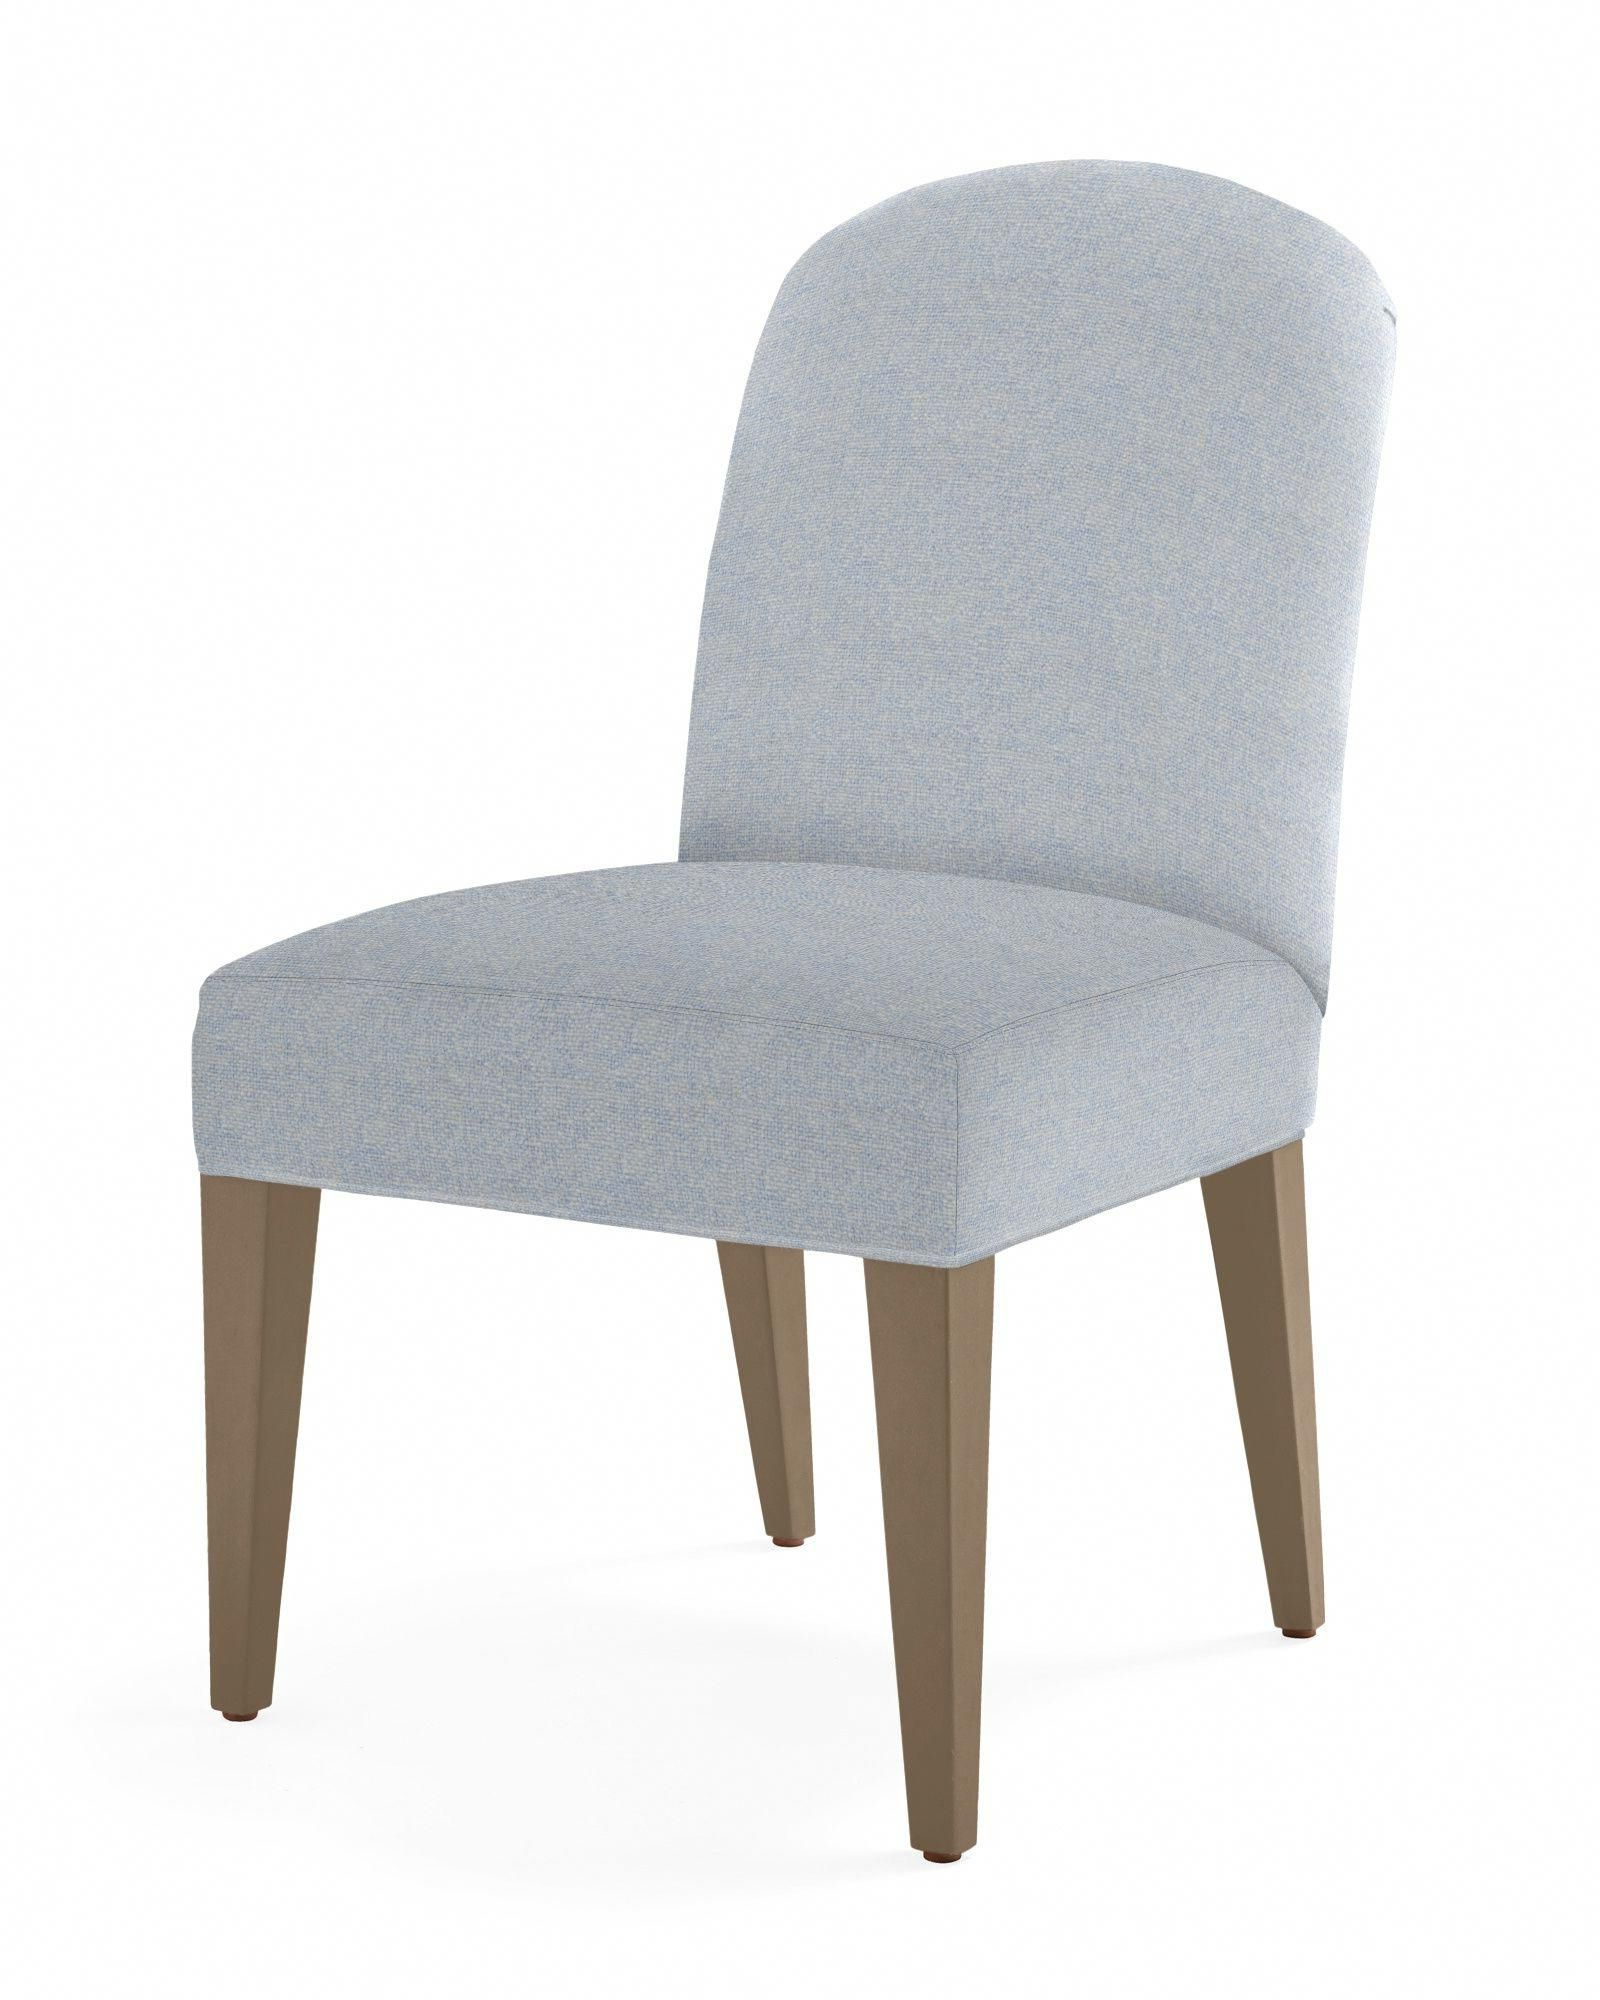 Styling Chairs Regarding Ames Arm Sofa Chairs (View 7 of 20)